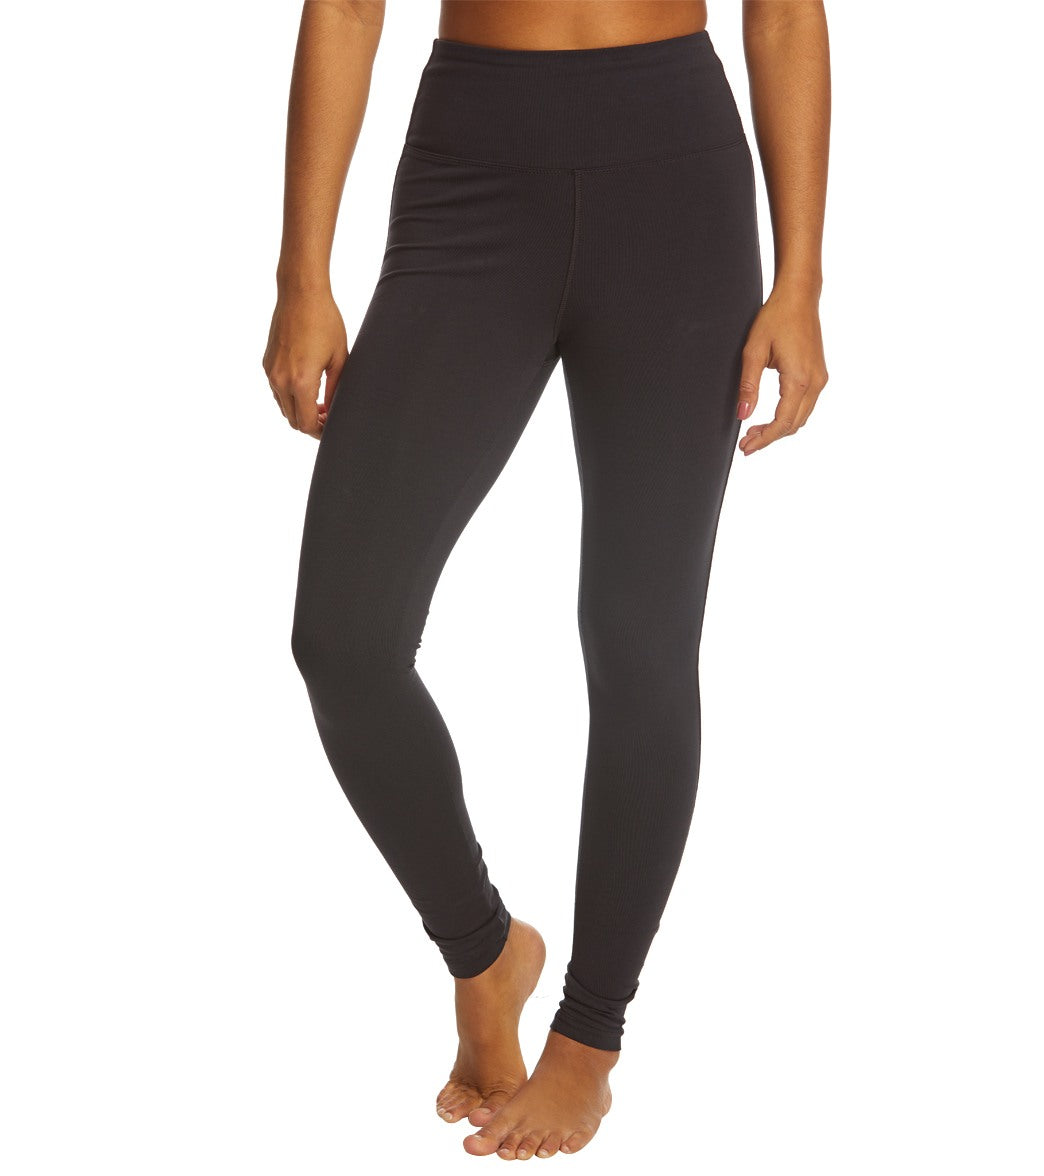 Feel confident and cool as you move and stretch in these Marika Olivia High Waisted Tummy Control Yoga Leggings. A powered mesh lined wide waistband holds the lower tummy in while structured seams enhance your silhouette so you can look great even through demanding workouts. Features Women\\\'s yoga leggings. 4\\\